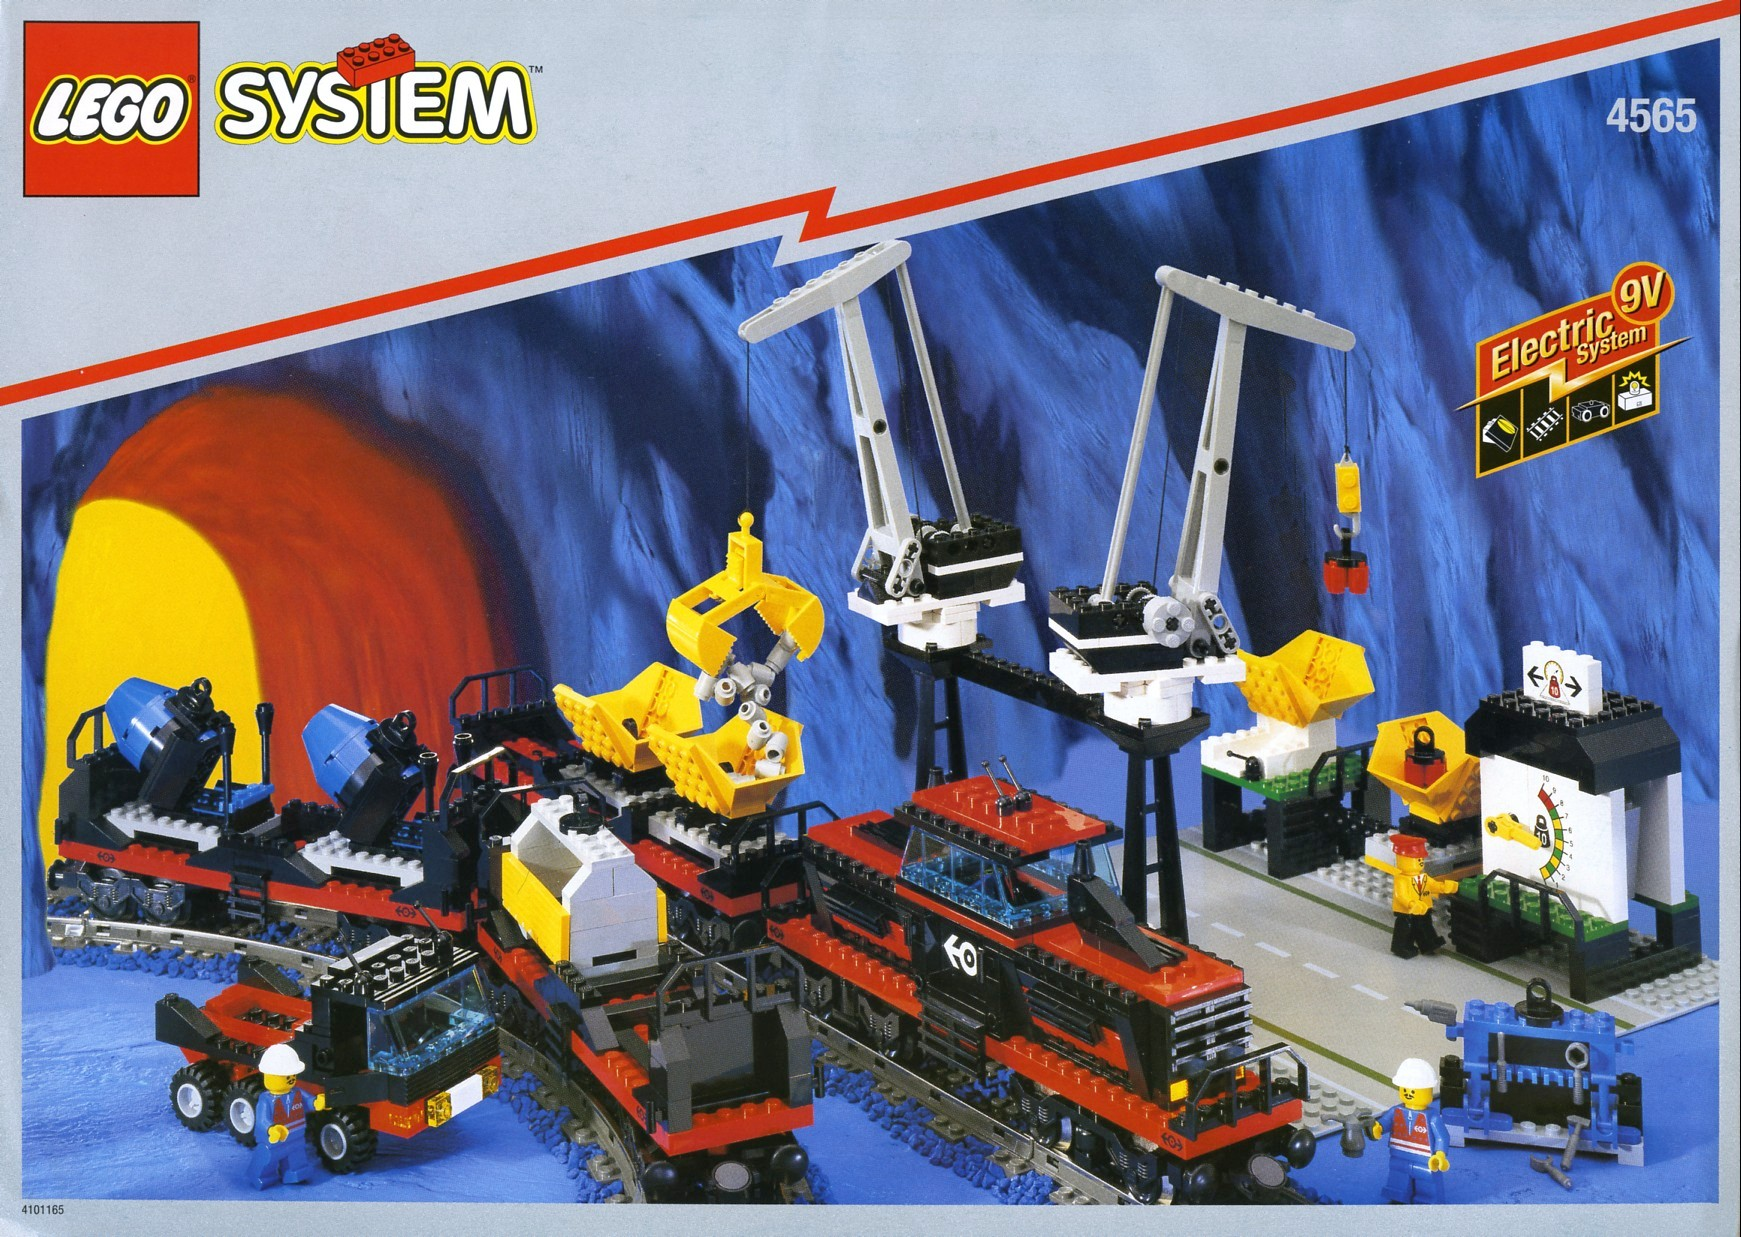 LEGO 4565 Freight and Crane Railway